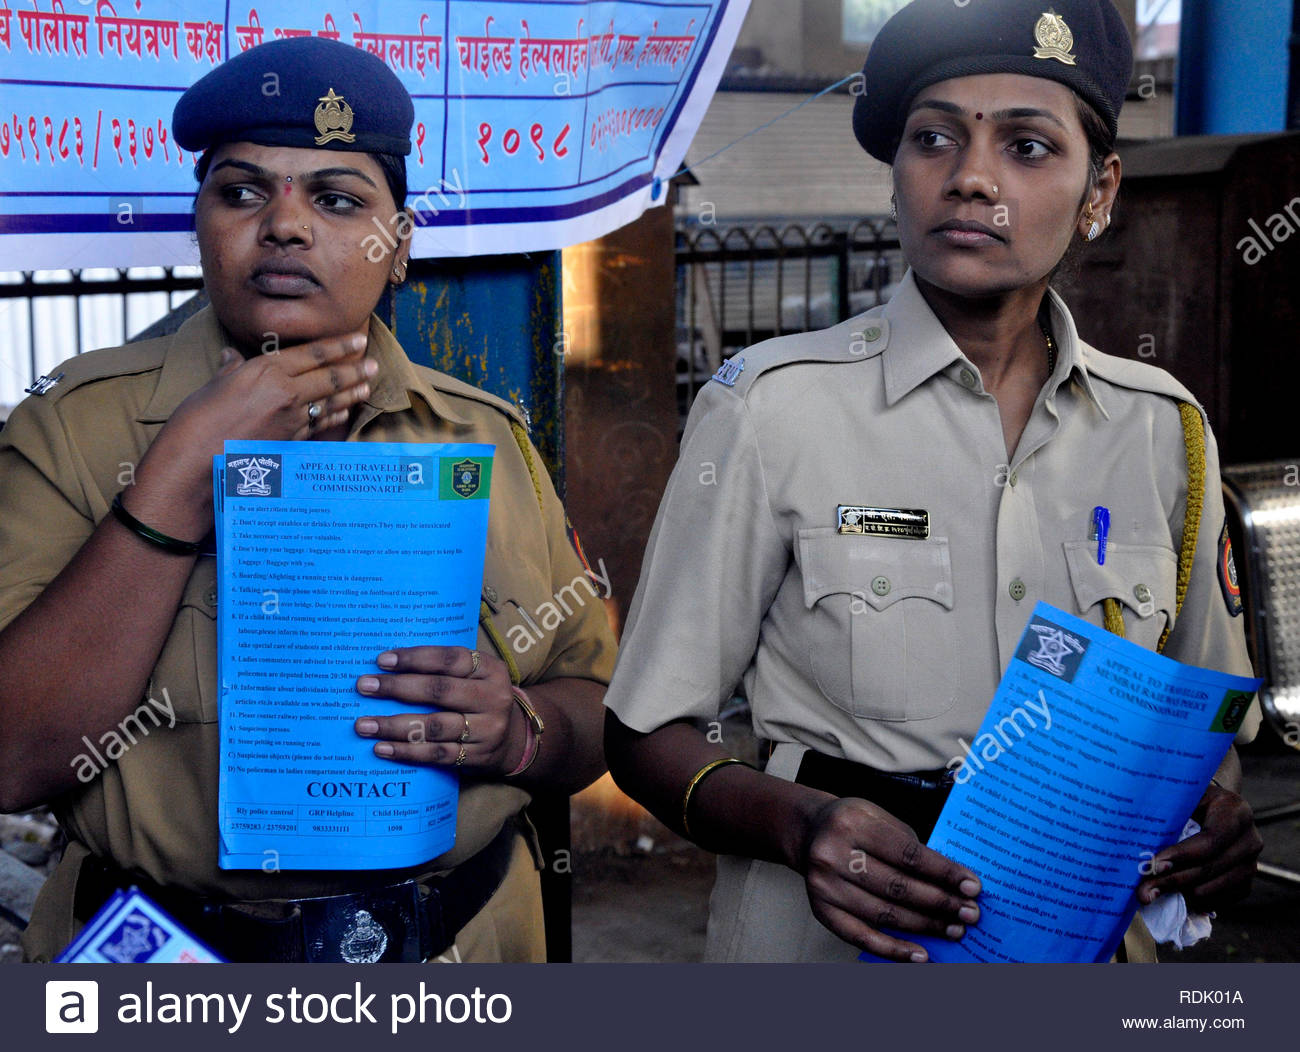 Women railway police personnel display a social awareness poster to protect women in a suburban train in Mumbai, India on January 1, 2013. (Deven Lad/ SOLARIS IMAGES) - Stock Image